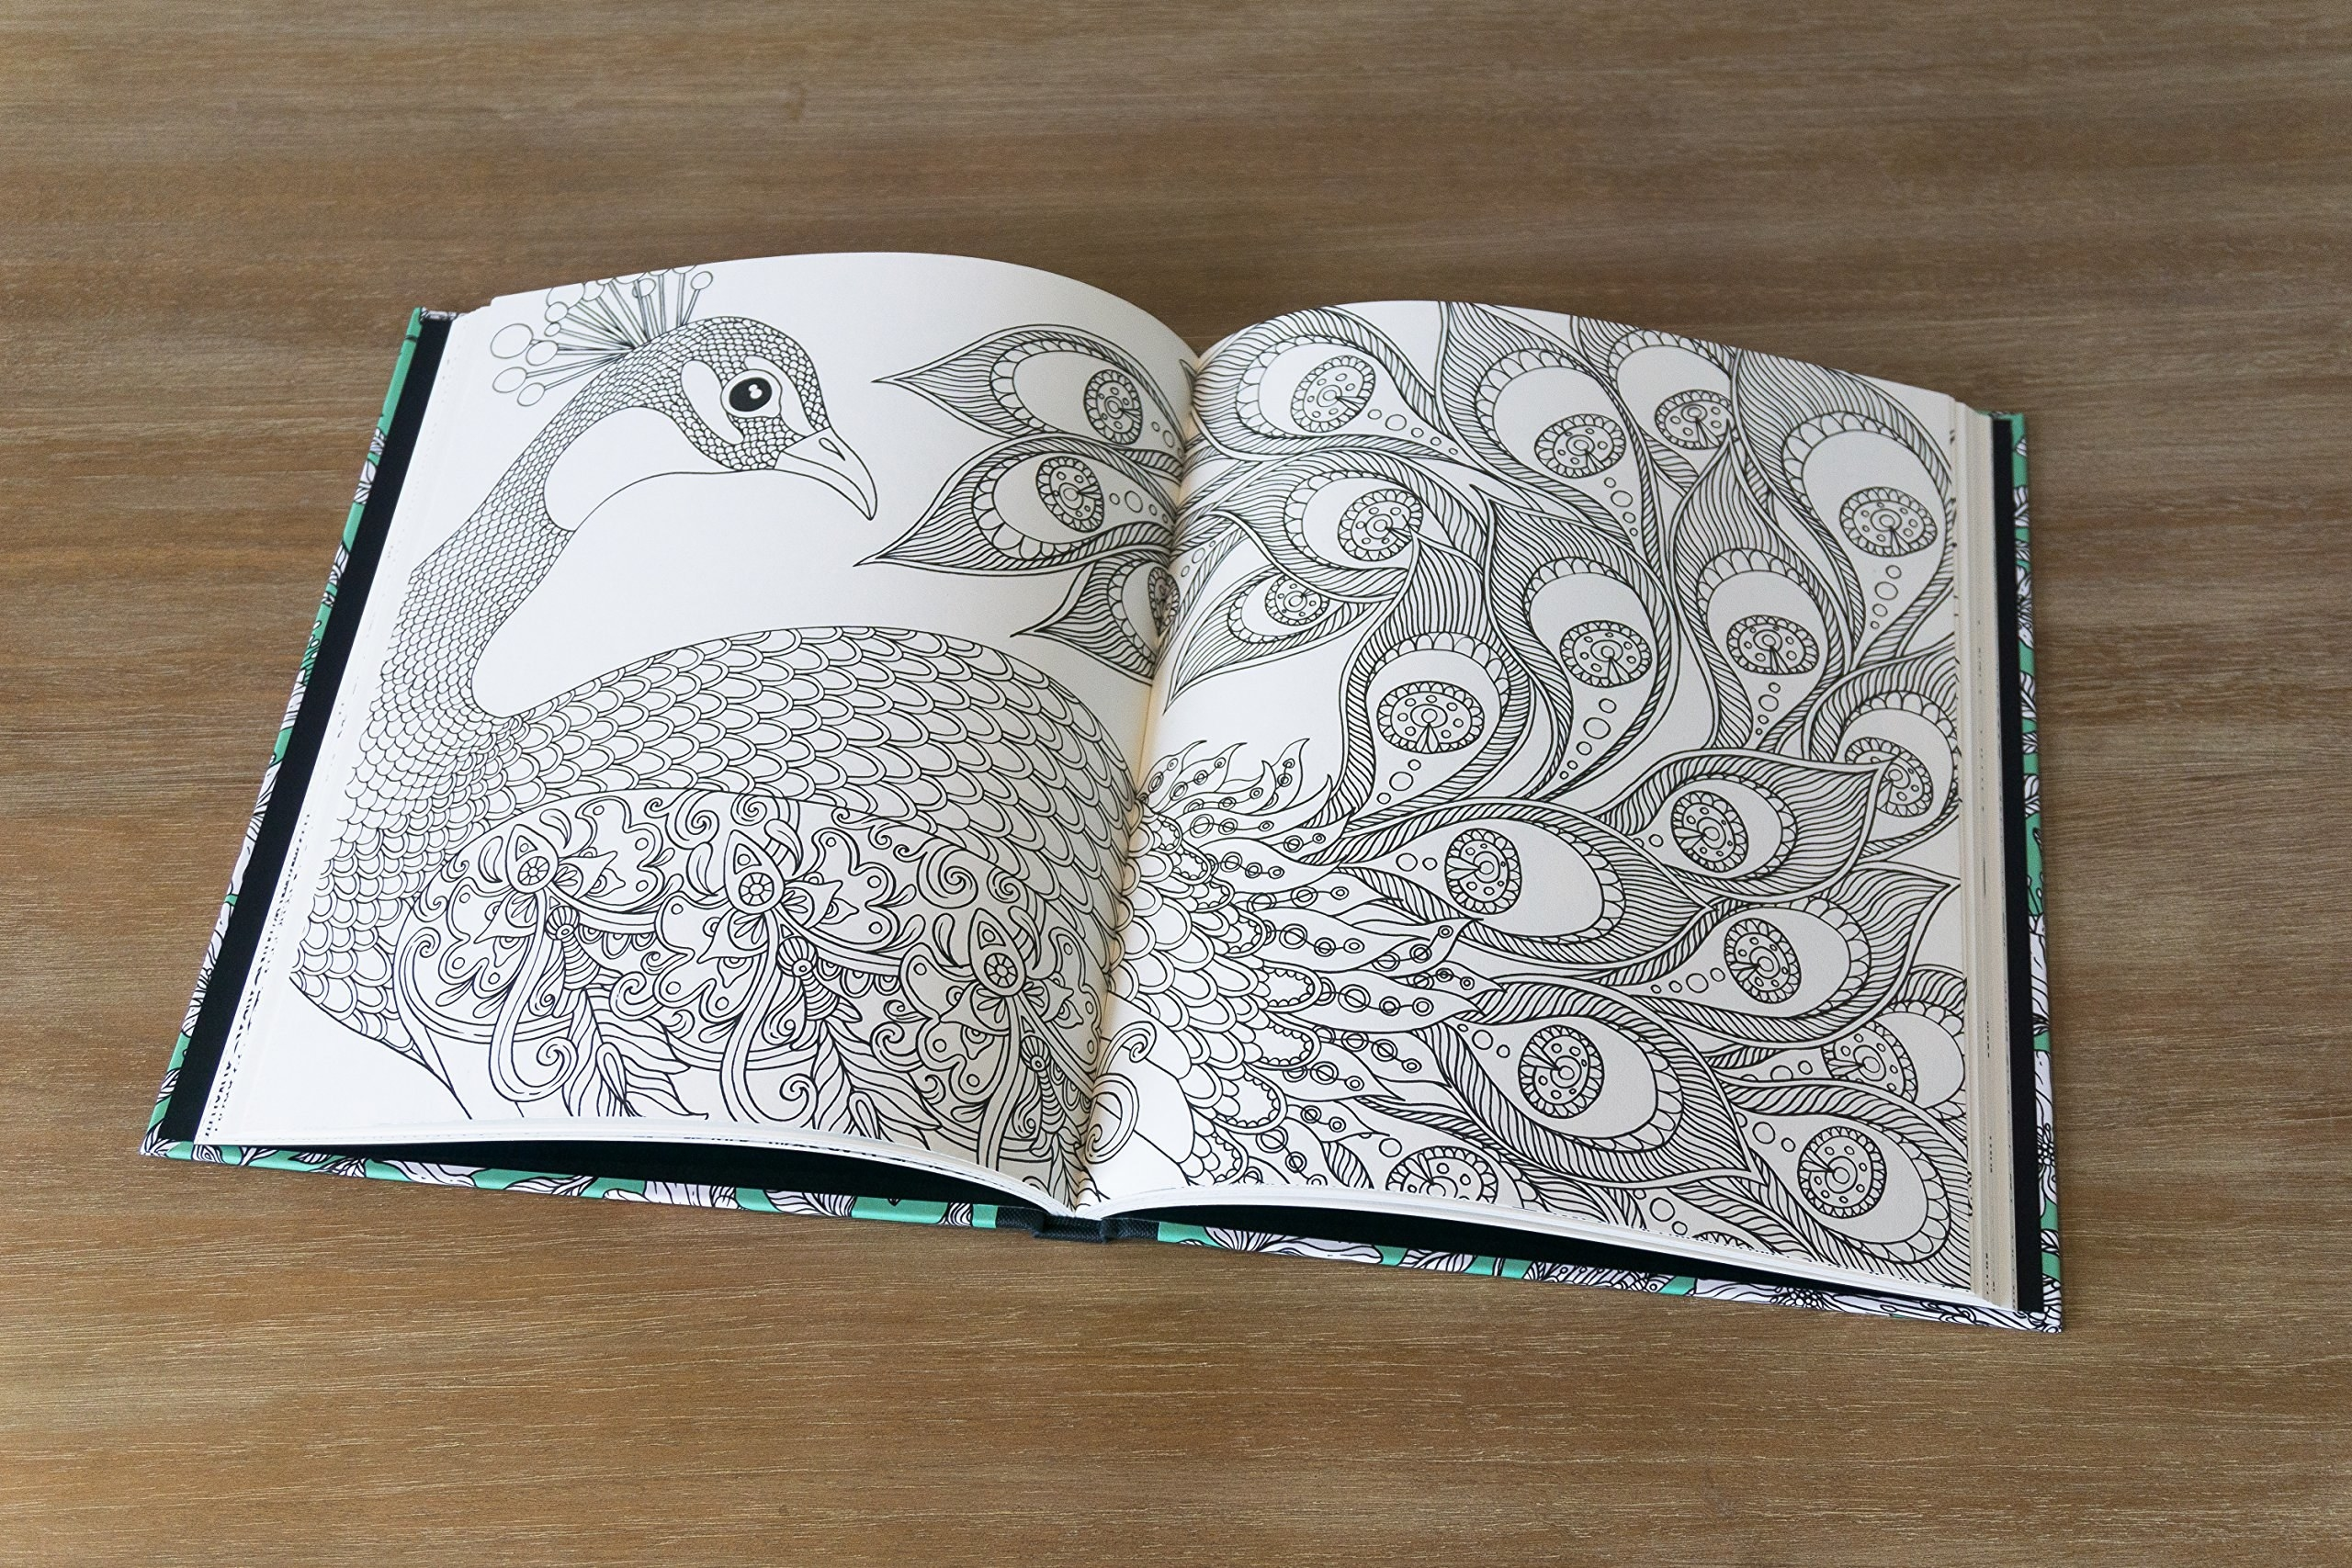 A peacock drawing in the colouring book